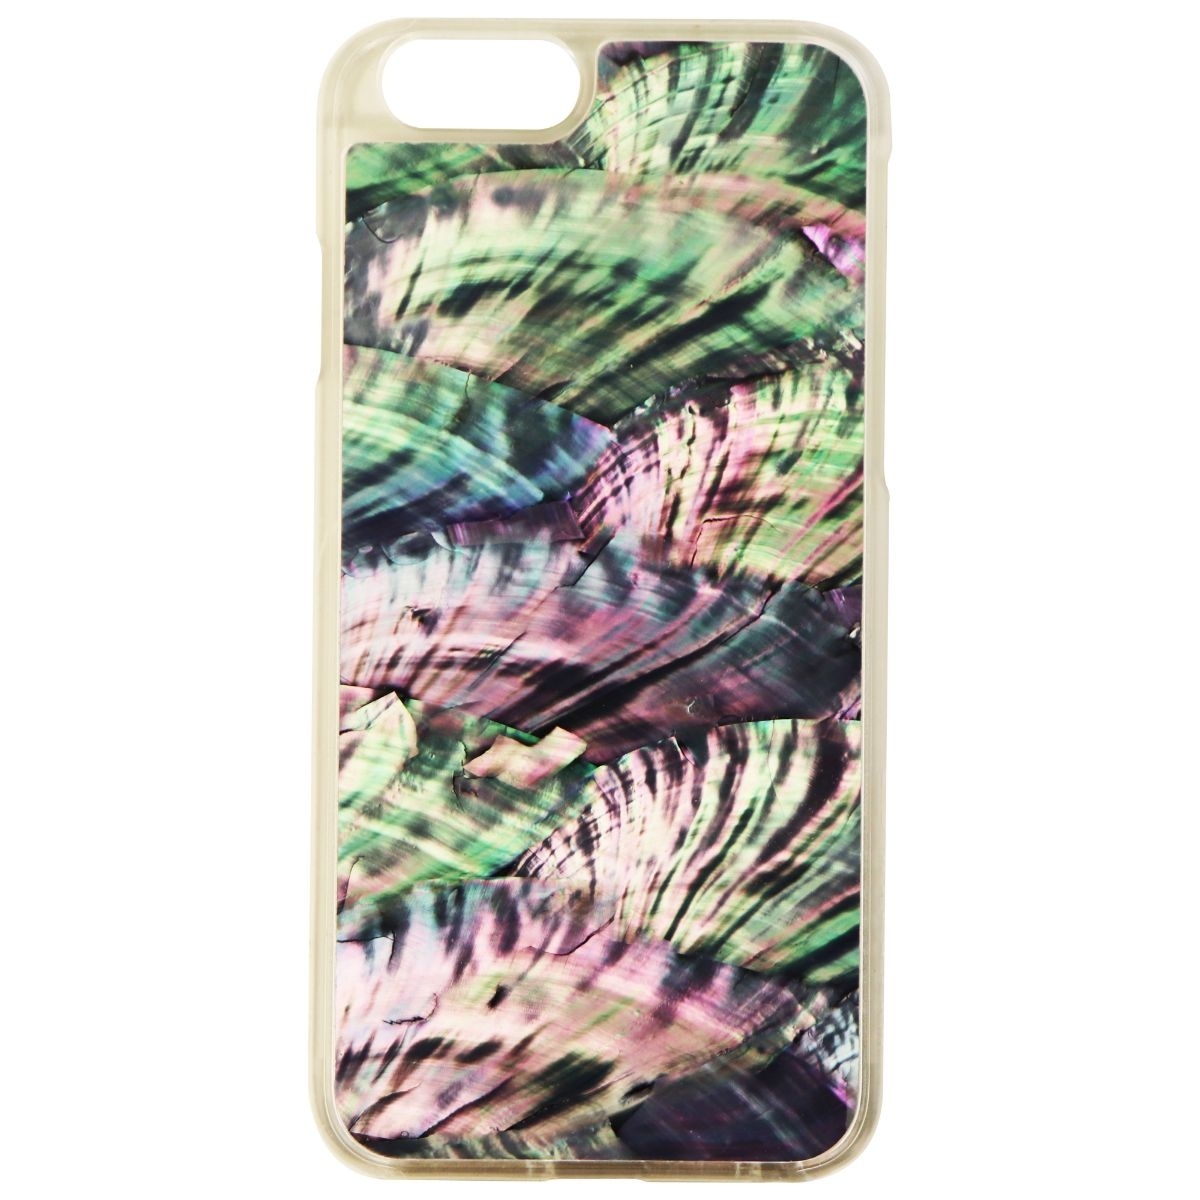 Recover Genuine Abalone Shell Hard Case for Apple iPhone 6s/6 - Teal Pink/Frost